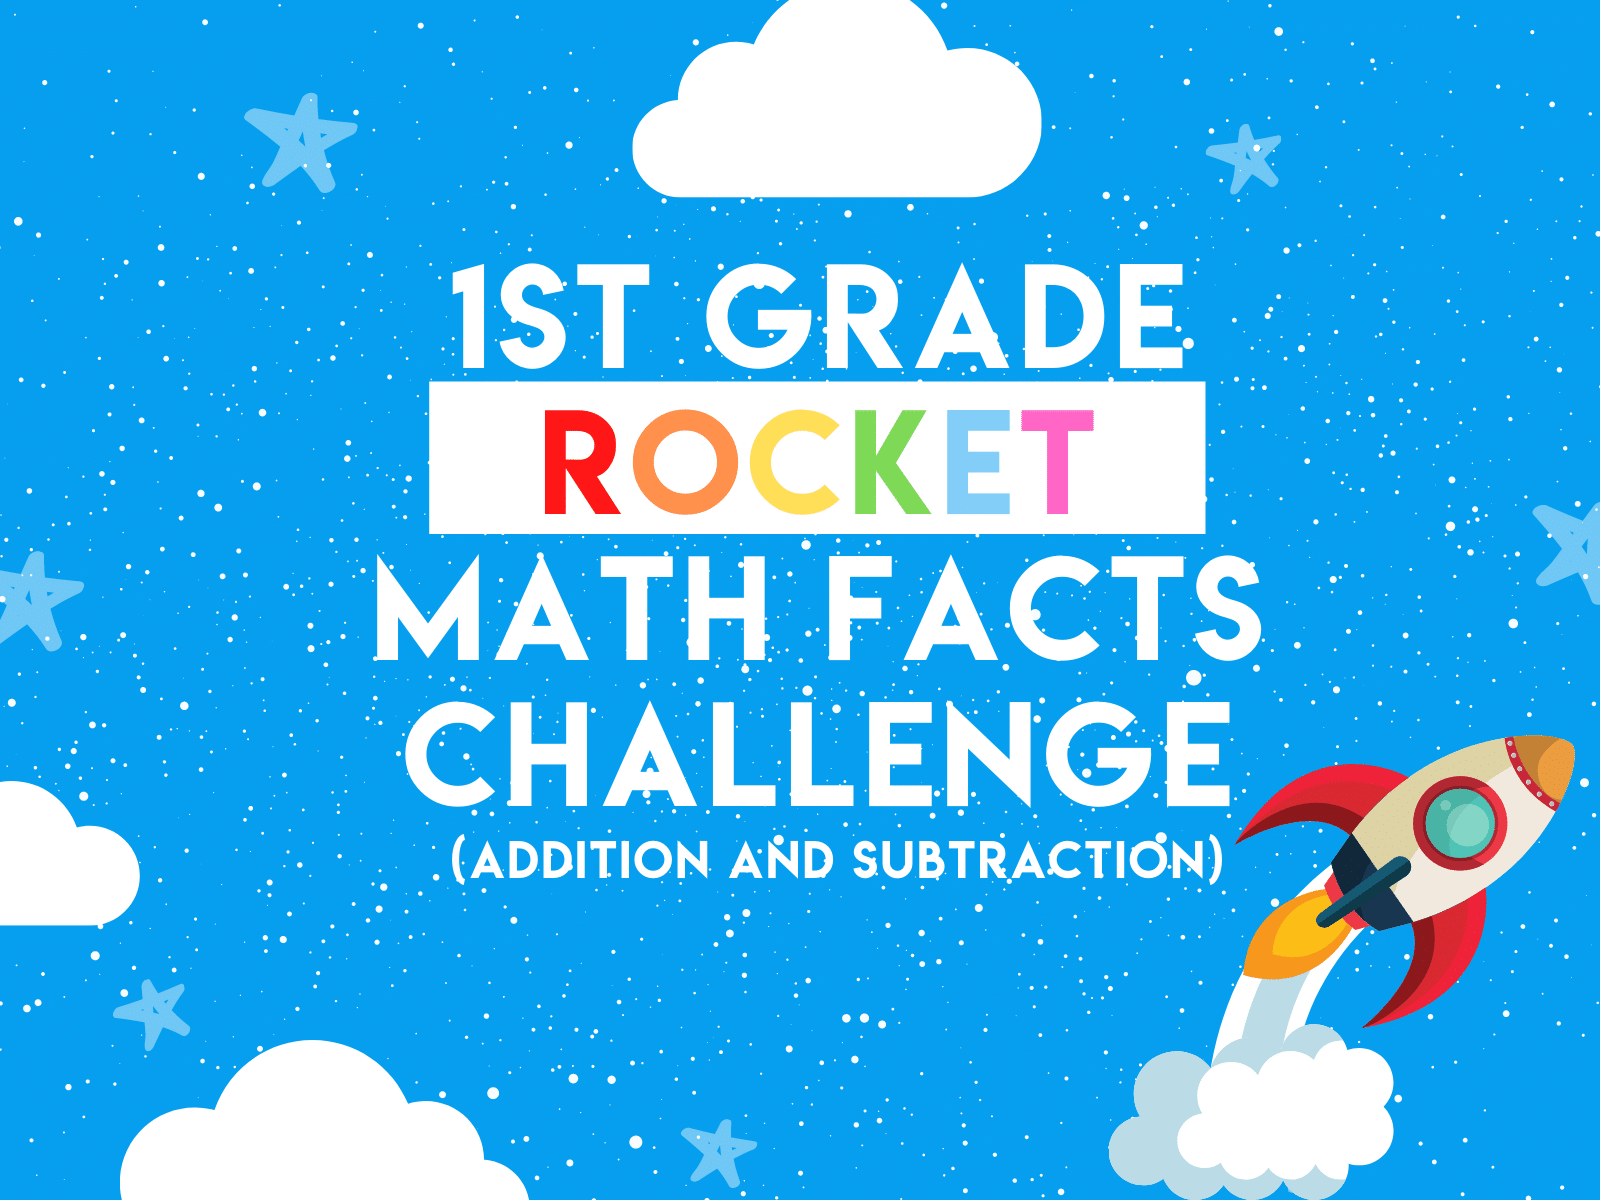 1st Grade Rocket Math Facts Challenge | Free Downloadable First Grade Learning Resource